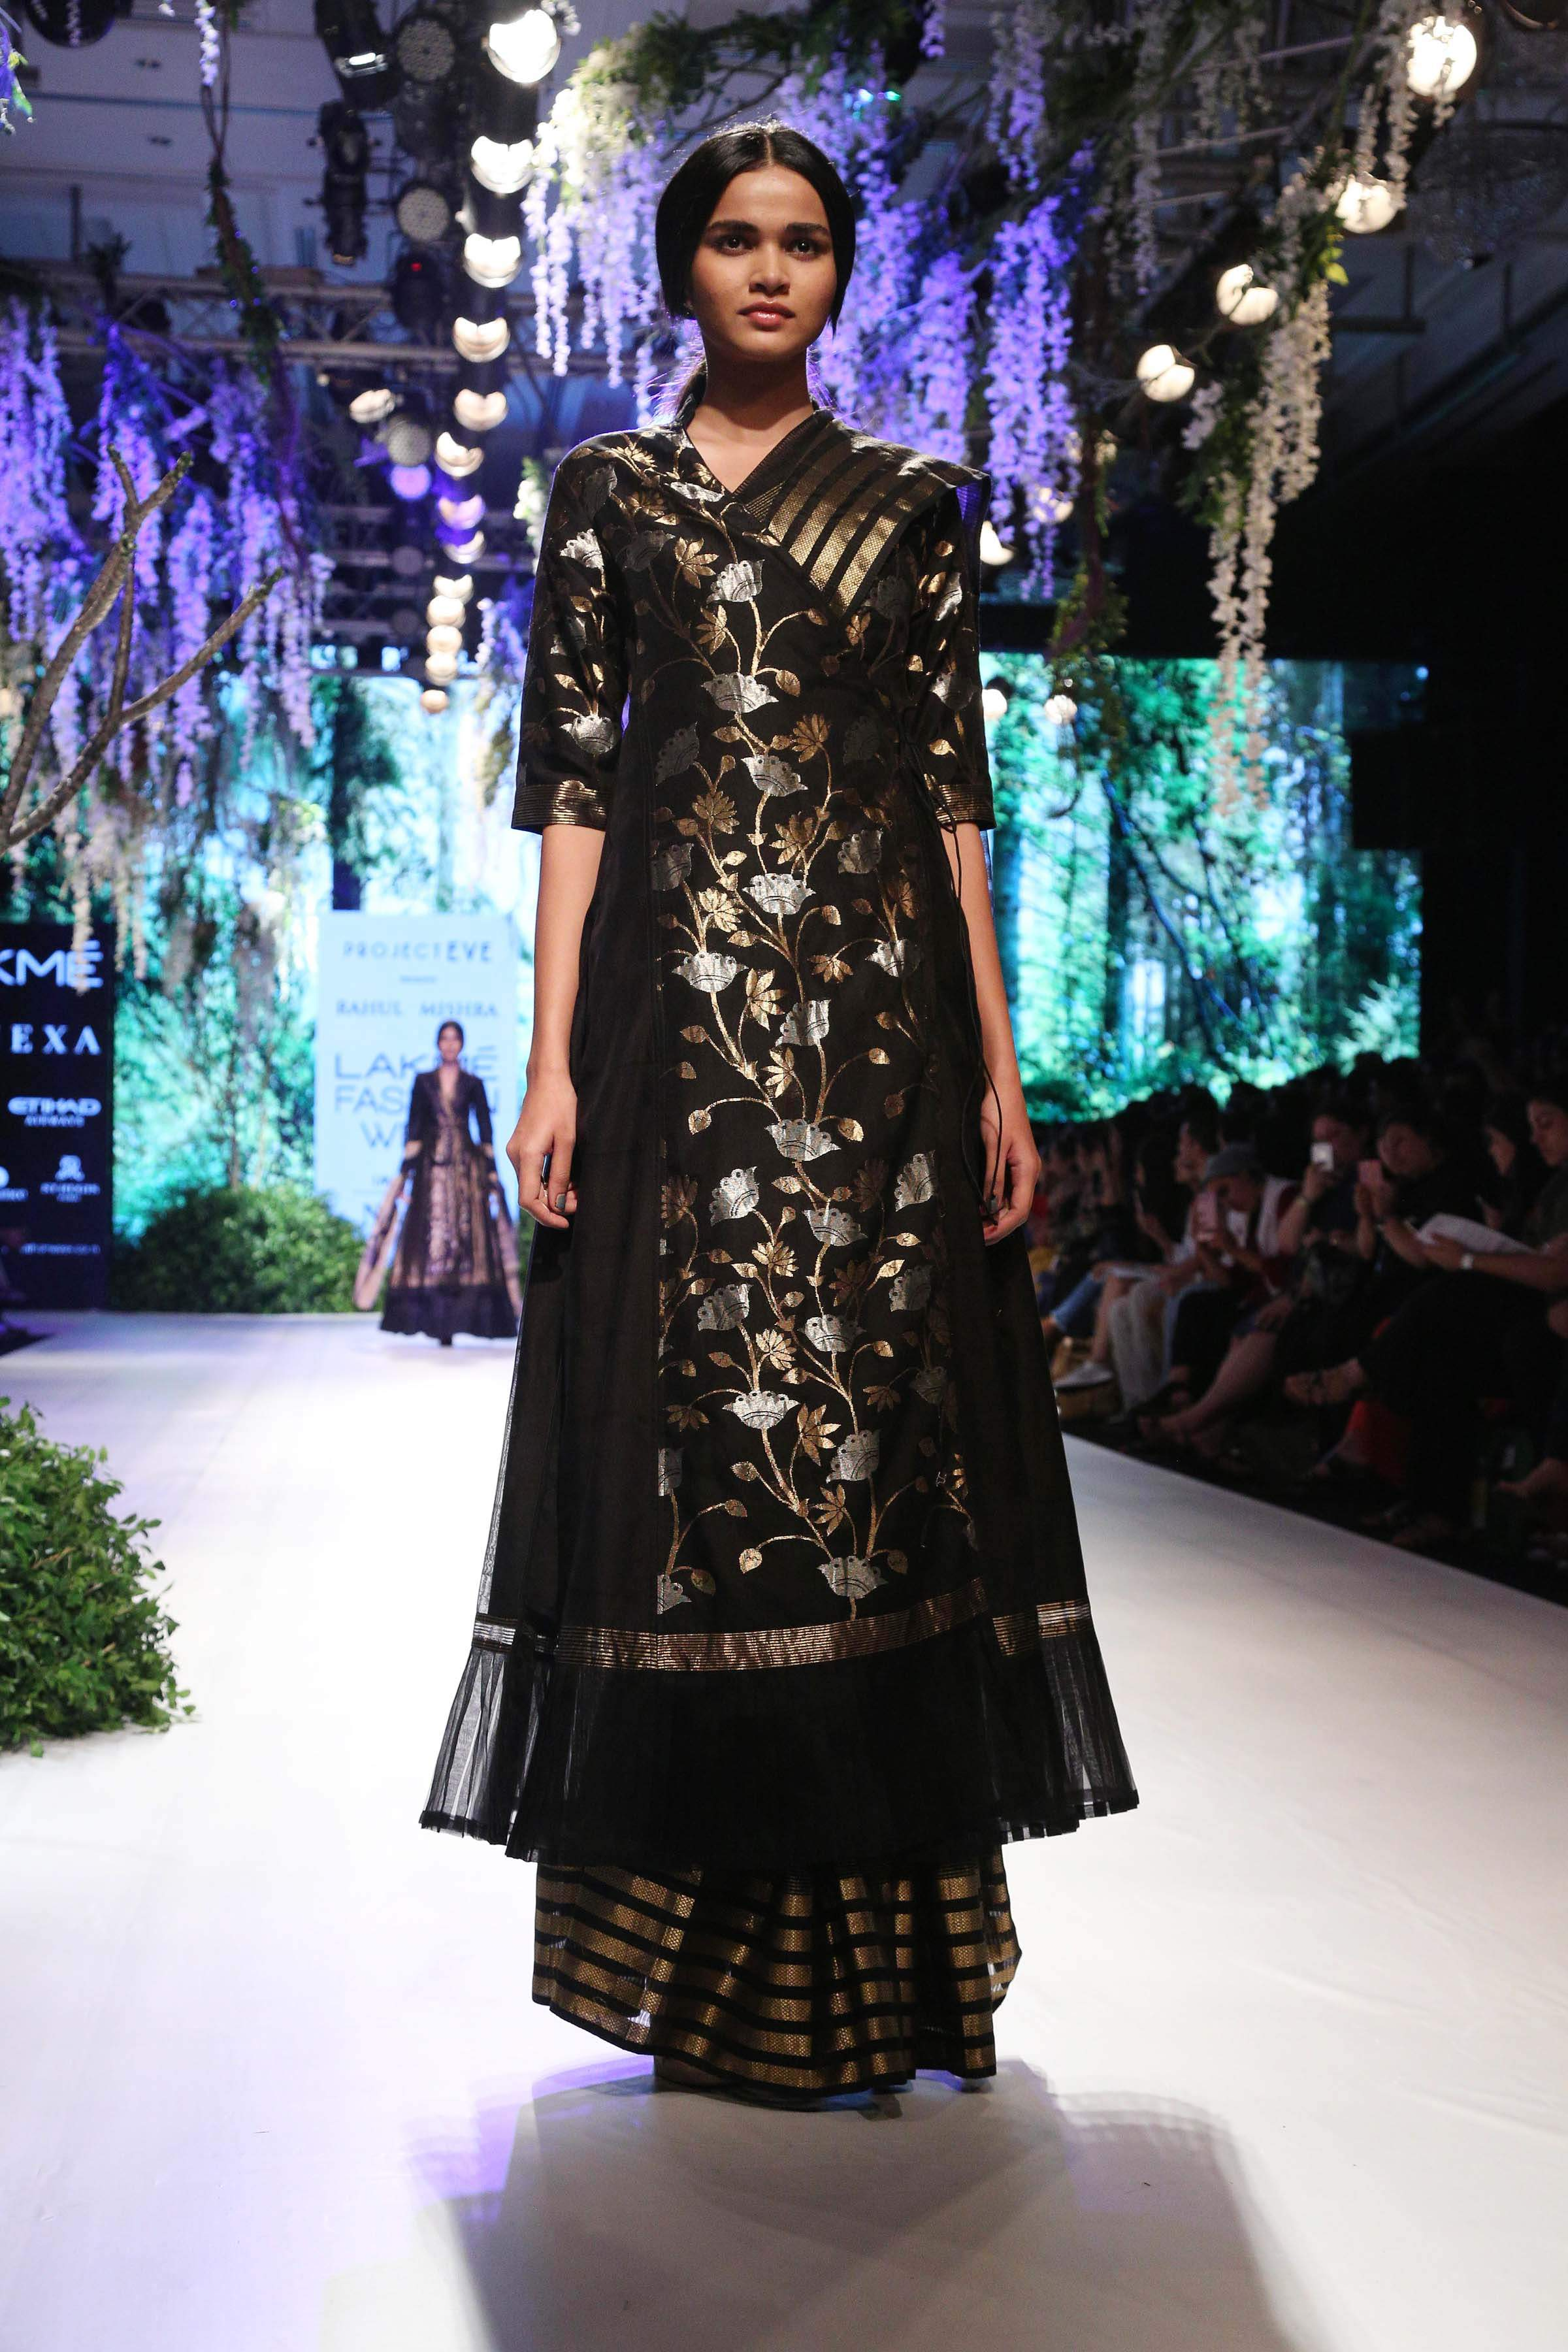 Rahul Mishra X Project Eve